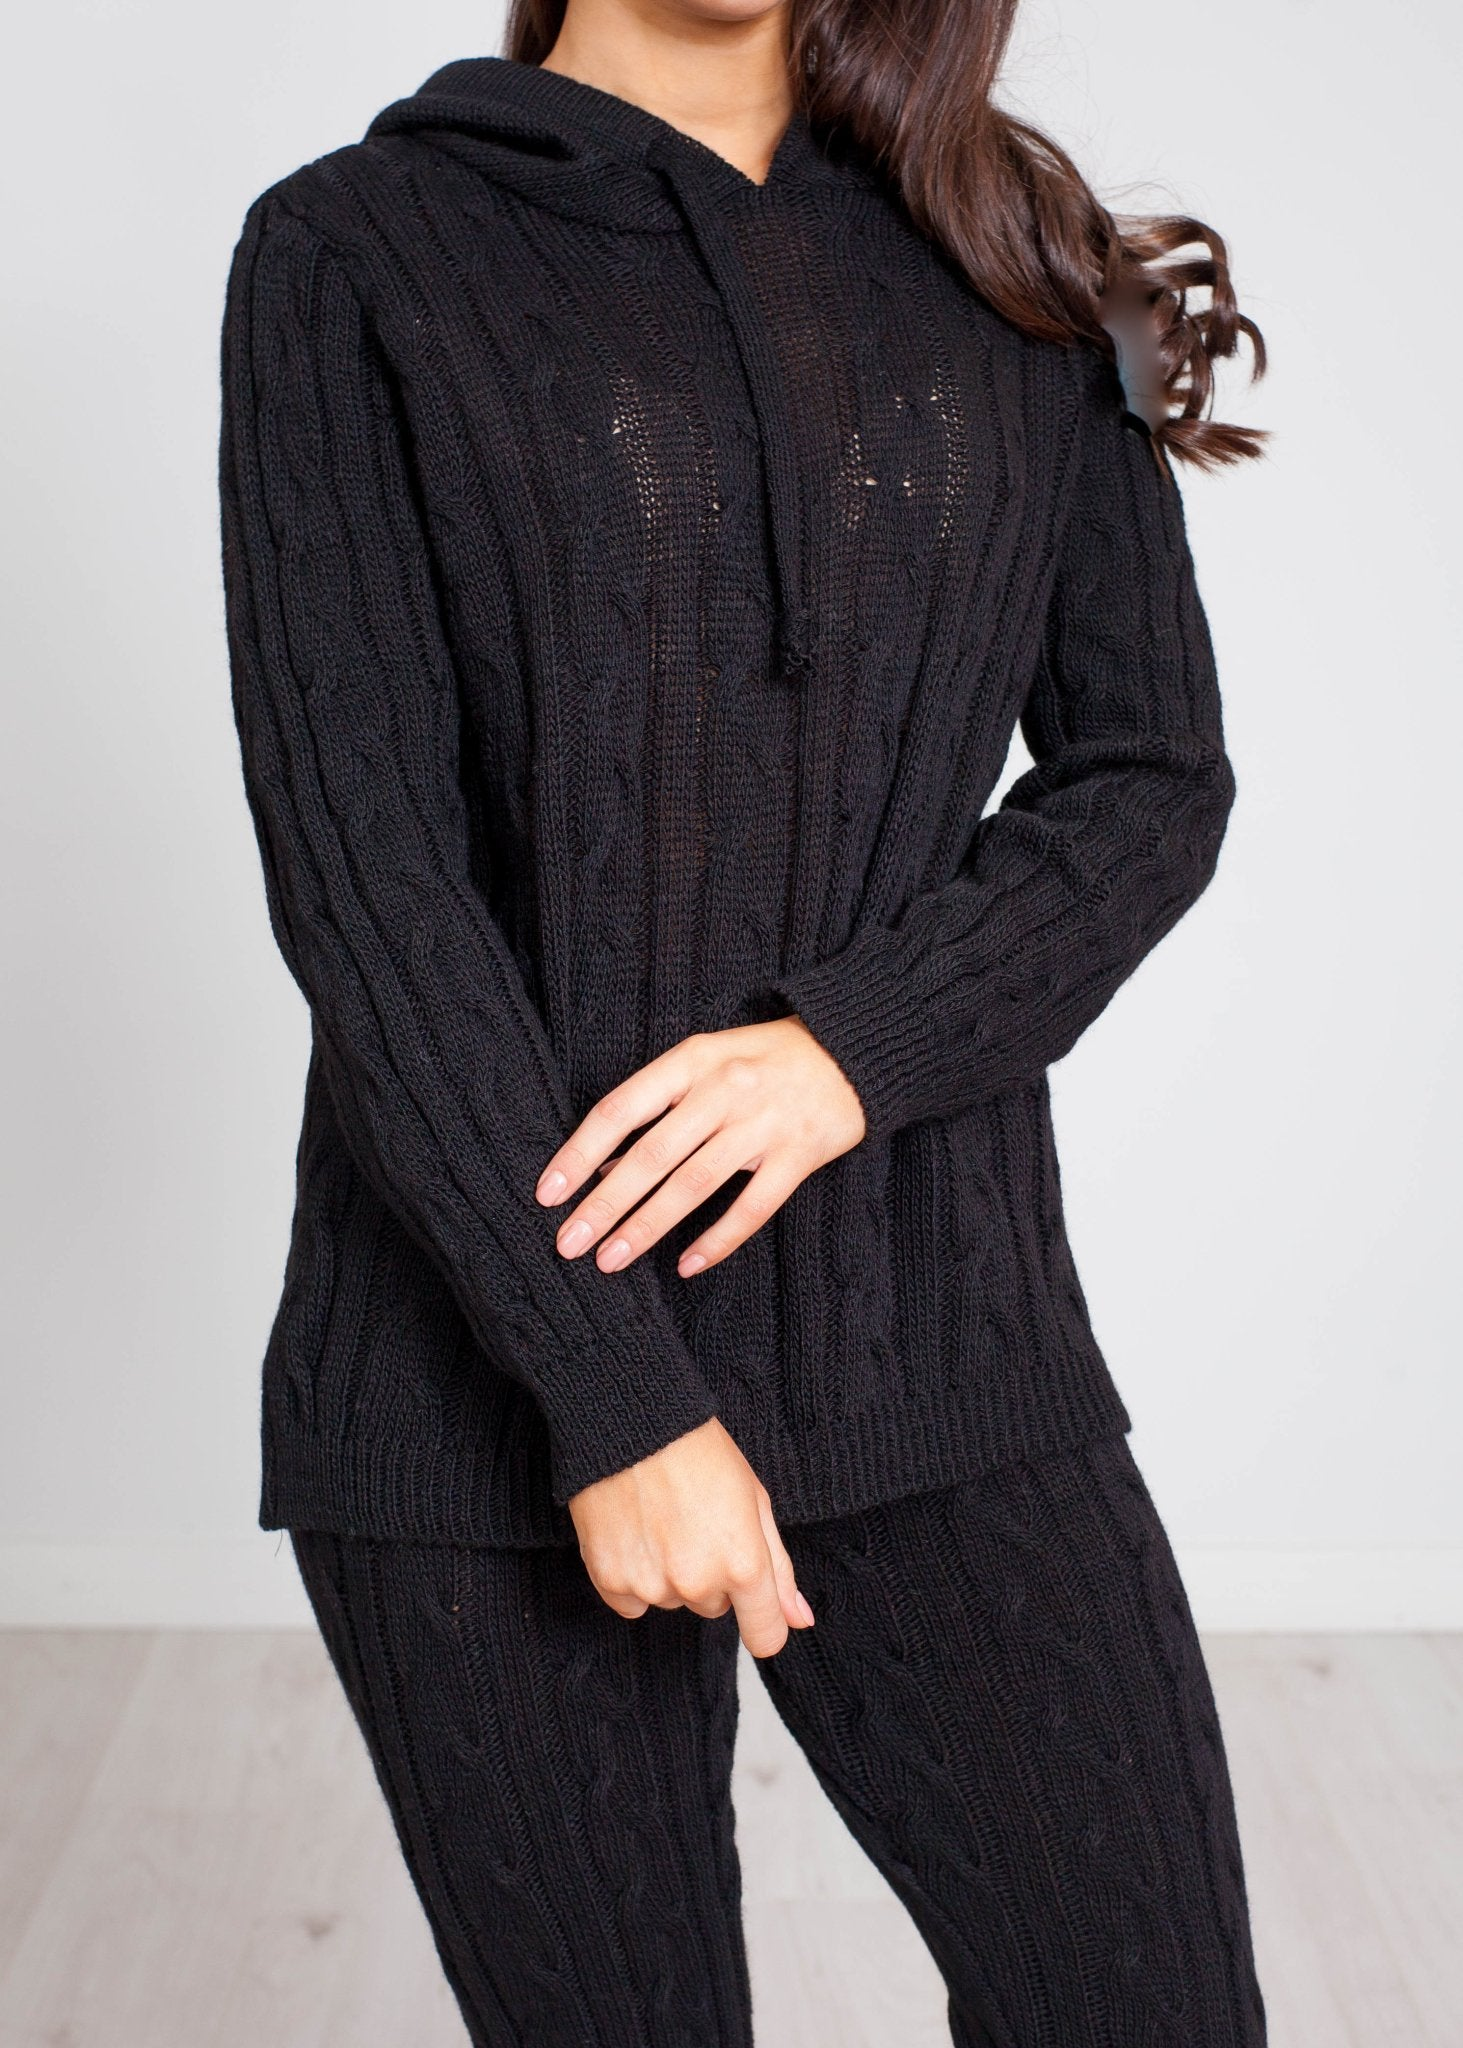 Priya Cable Knit Lounge Set In Black - The Walk in Wardrobe